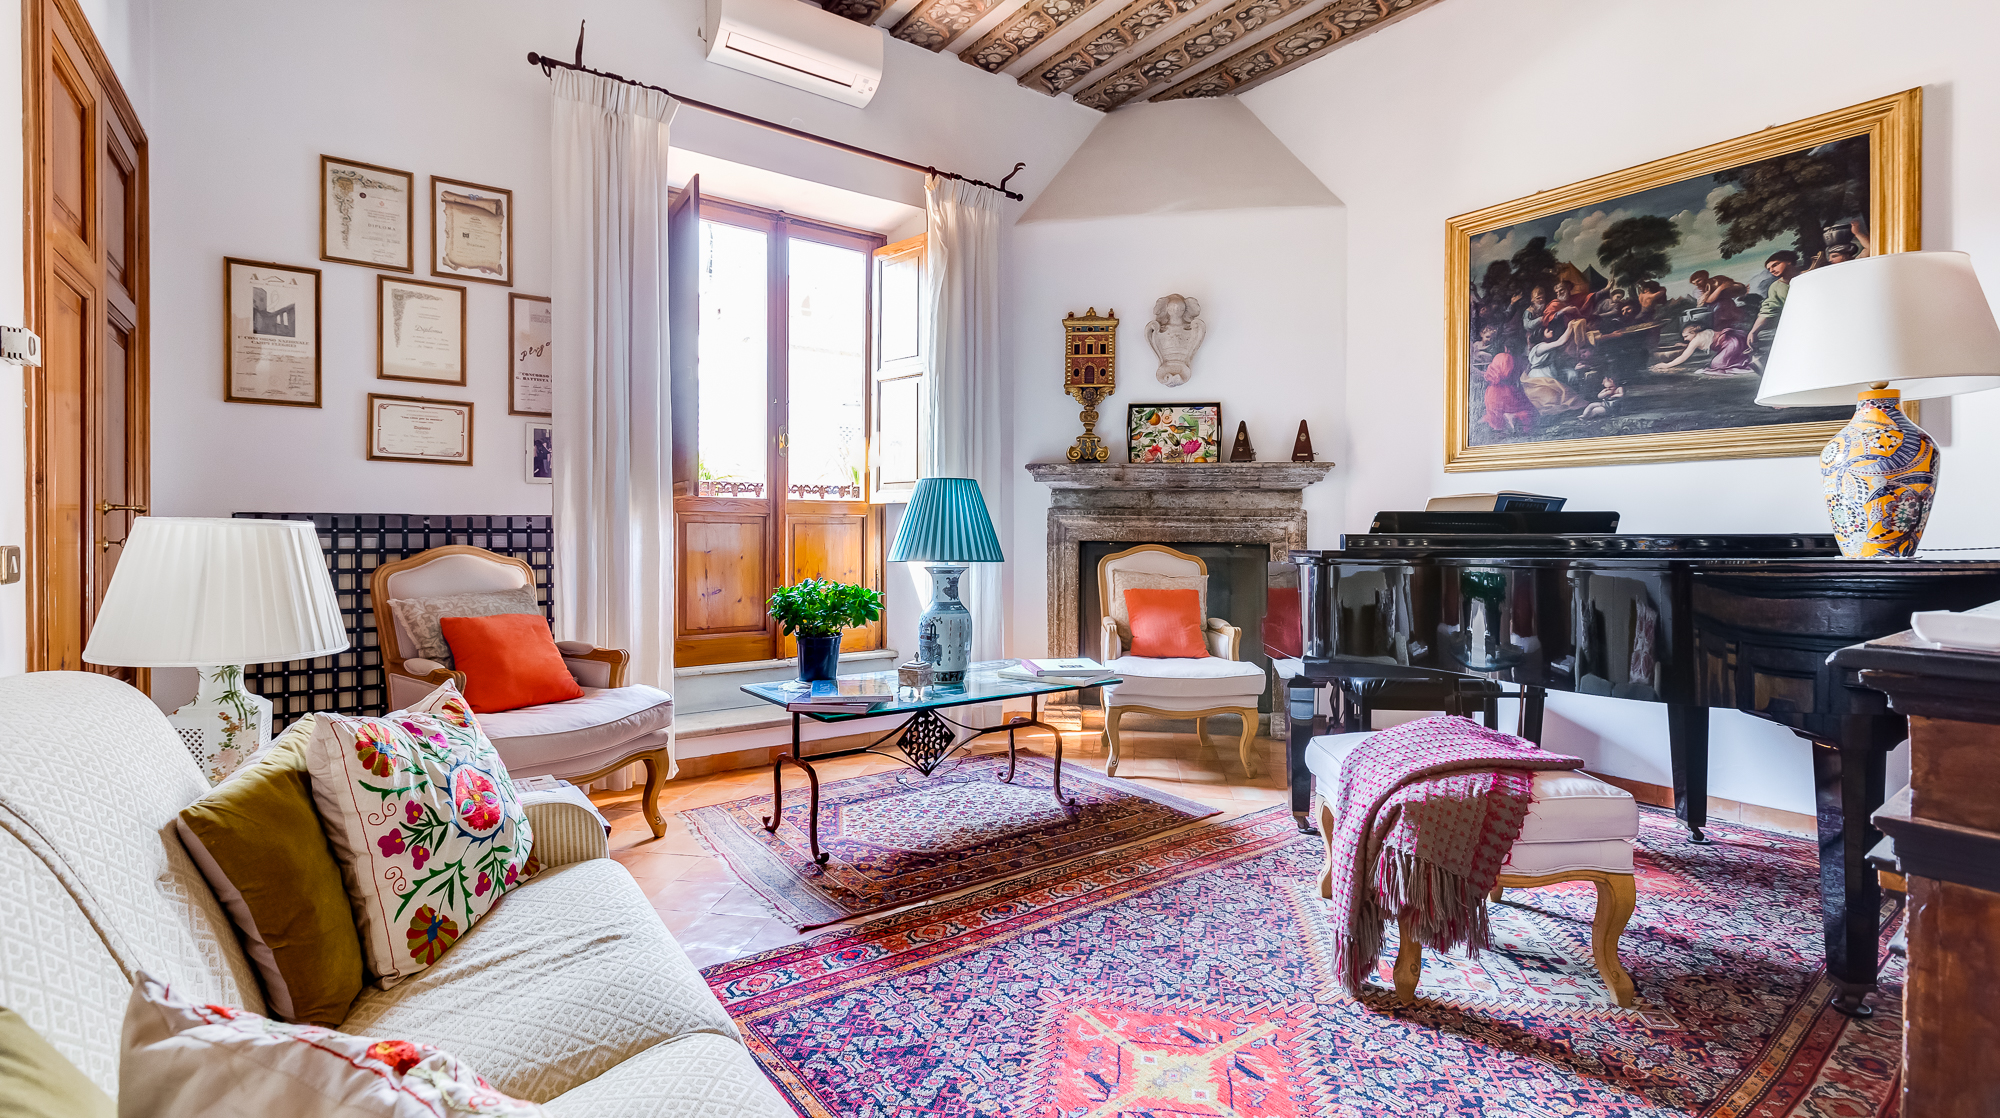 The 9 best alternatives to Airbnb